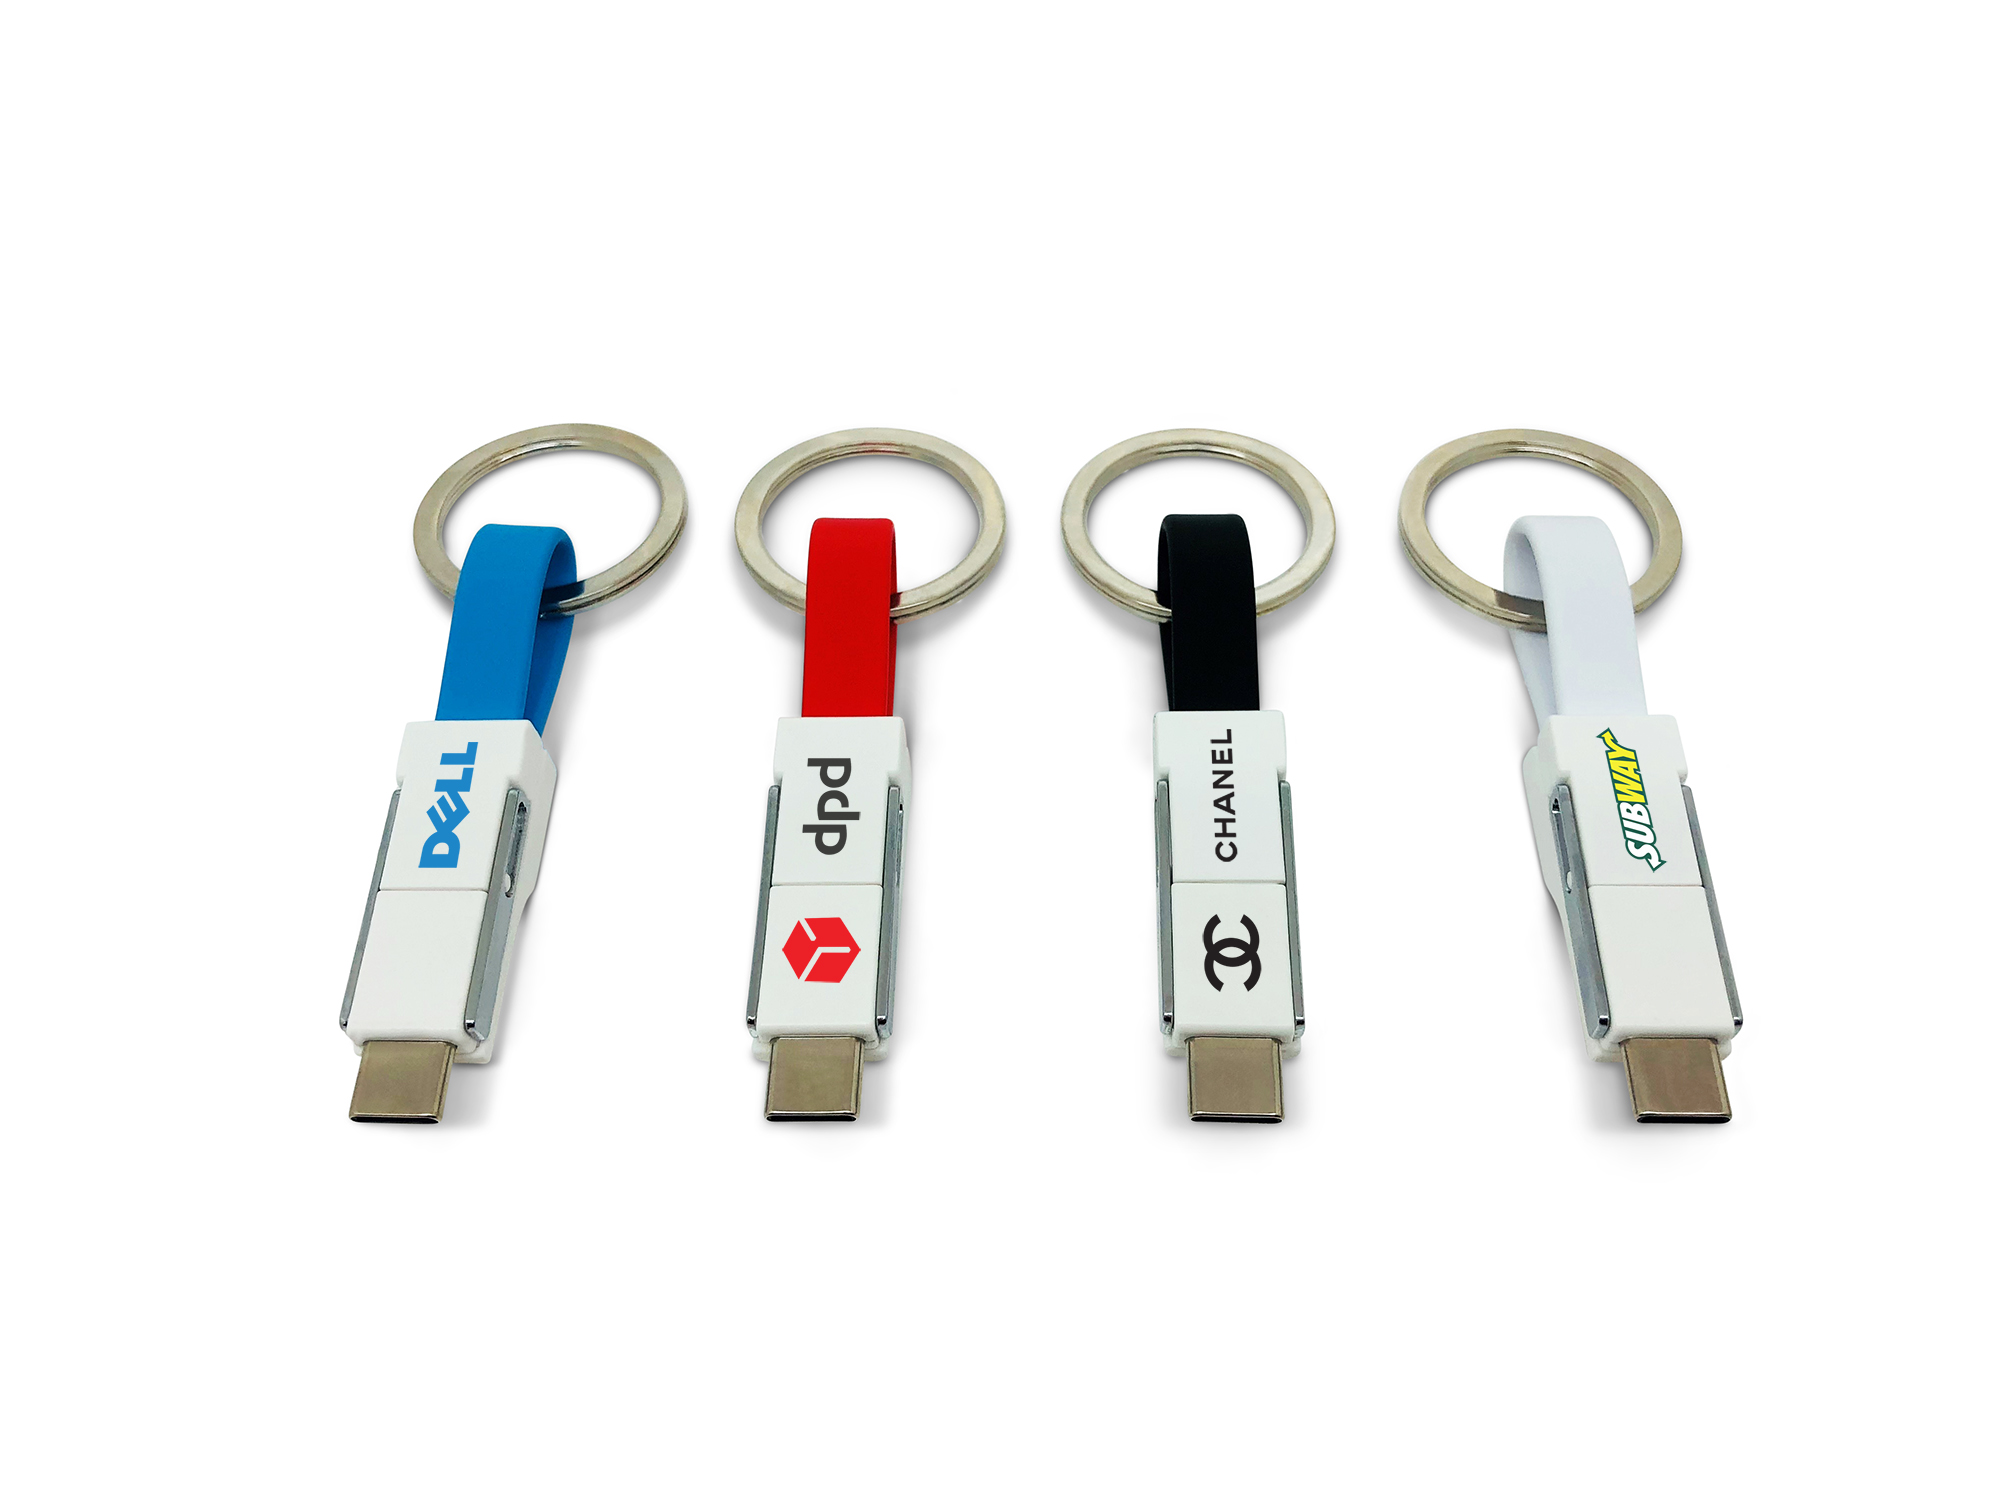 Printed 3-in-1 Keyring Charging Cable